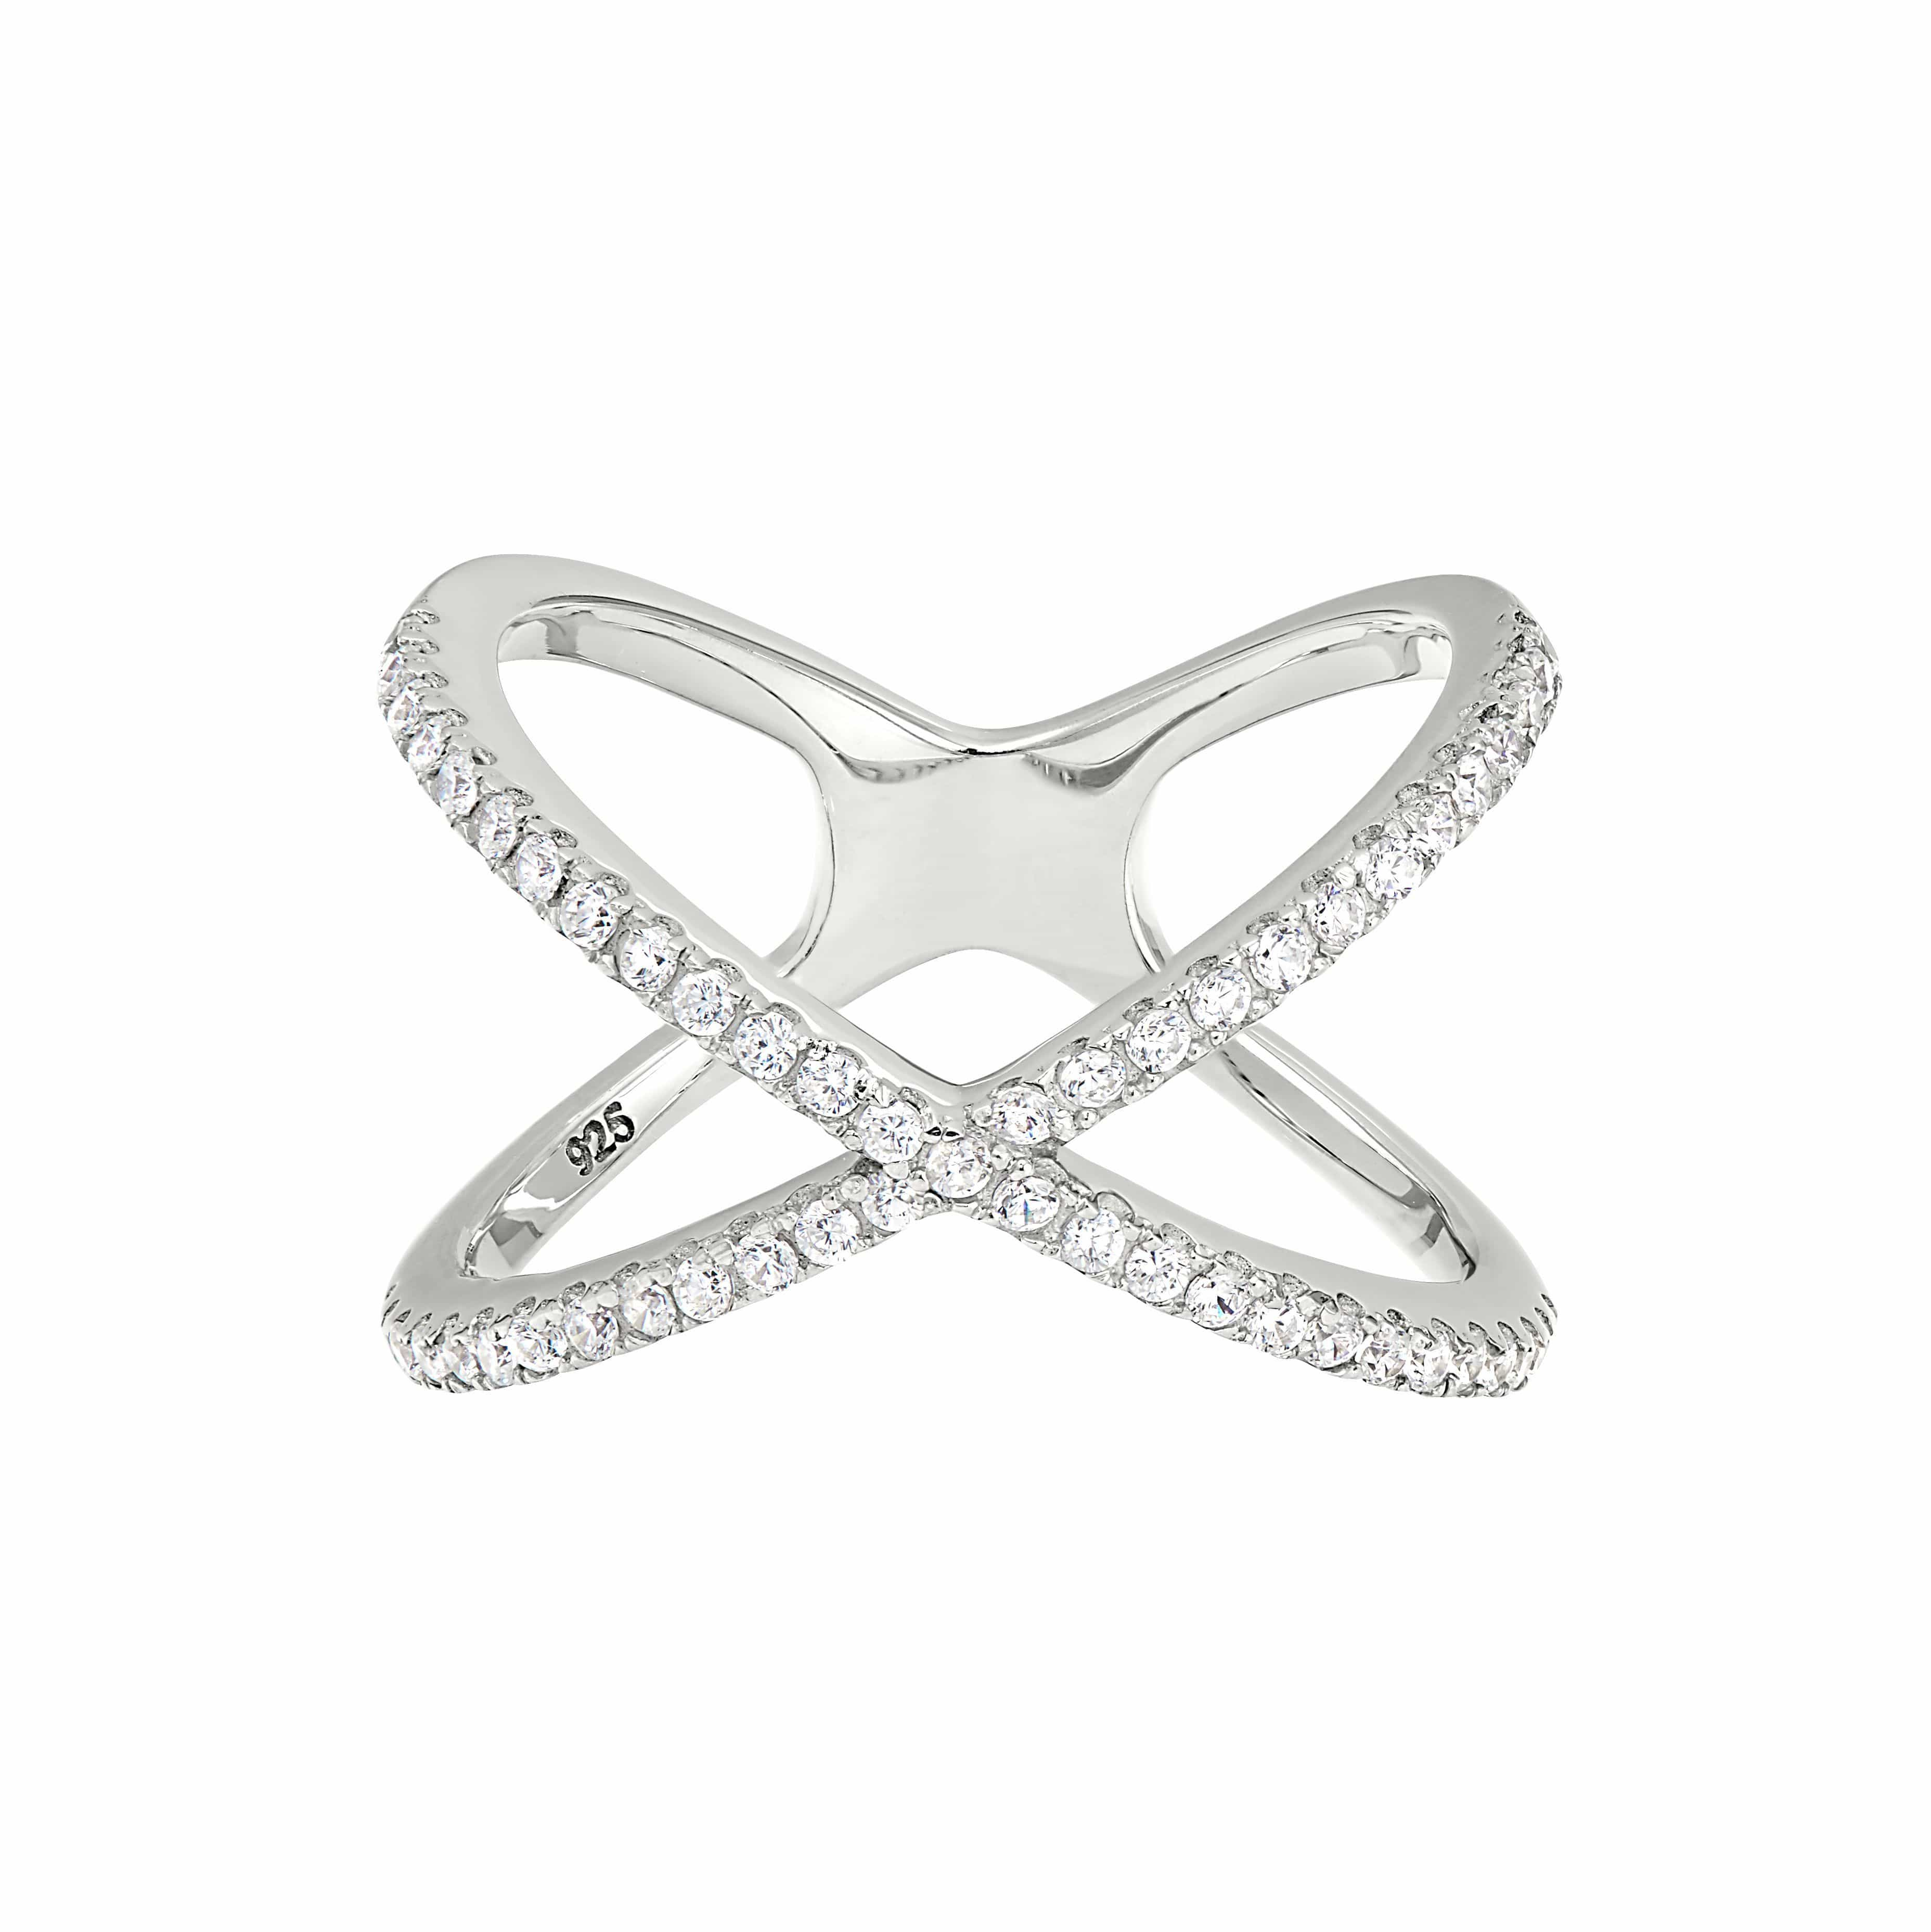 Platinum Finish Sterling Silver Micropave Criss-Cross Ring - BL2236R-Kelly Waters-Renee Taylor Gallery